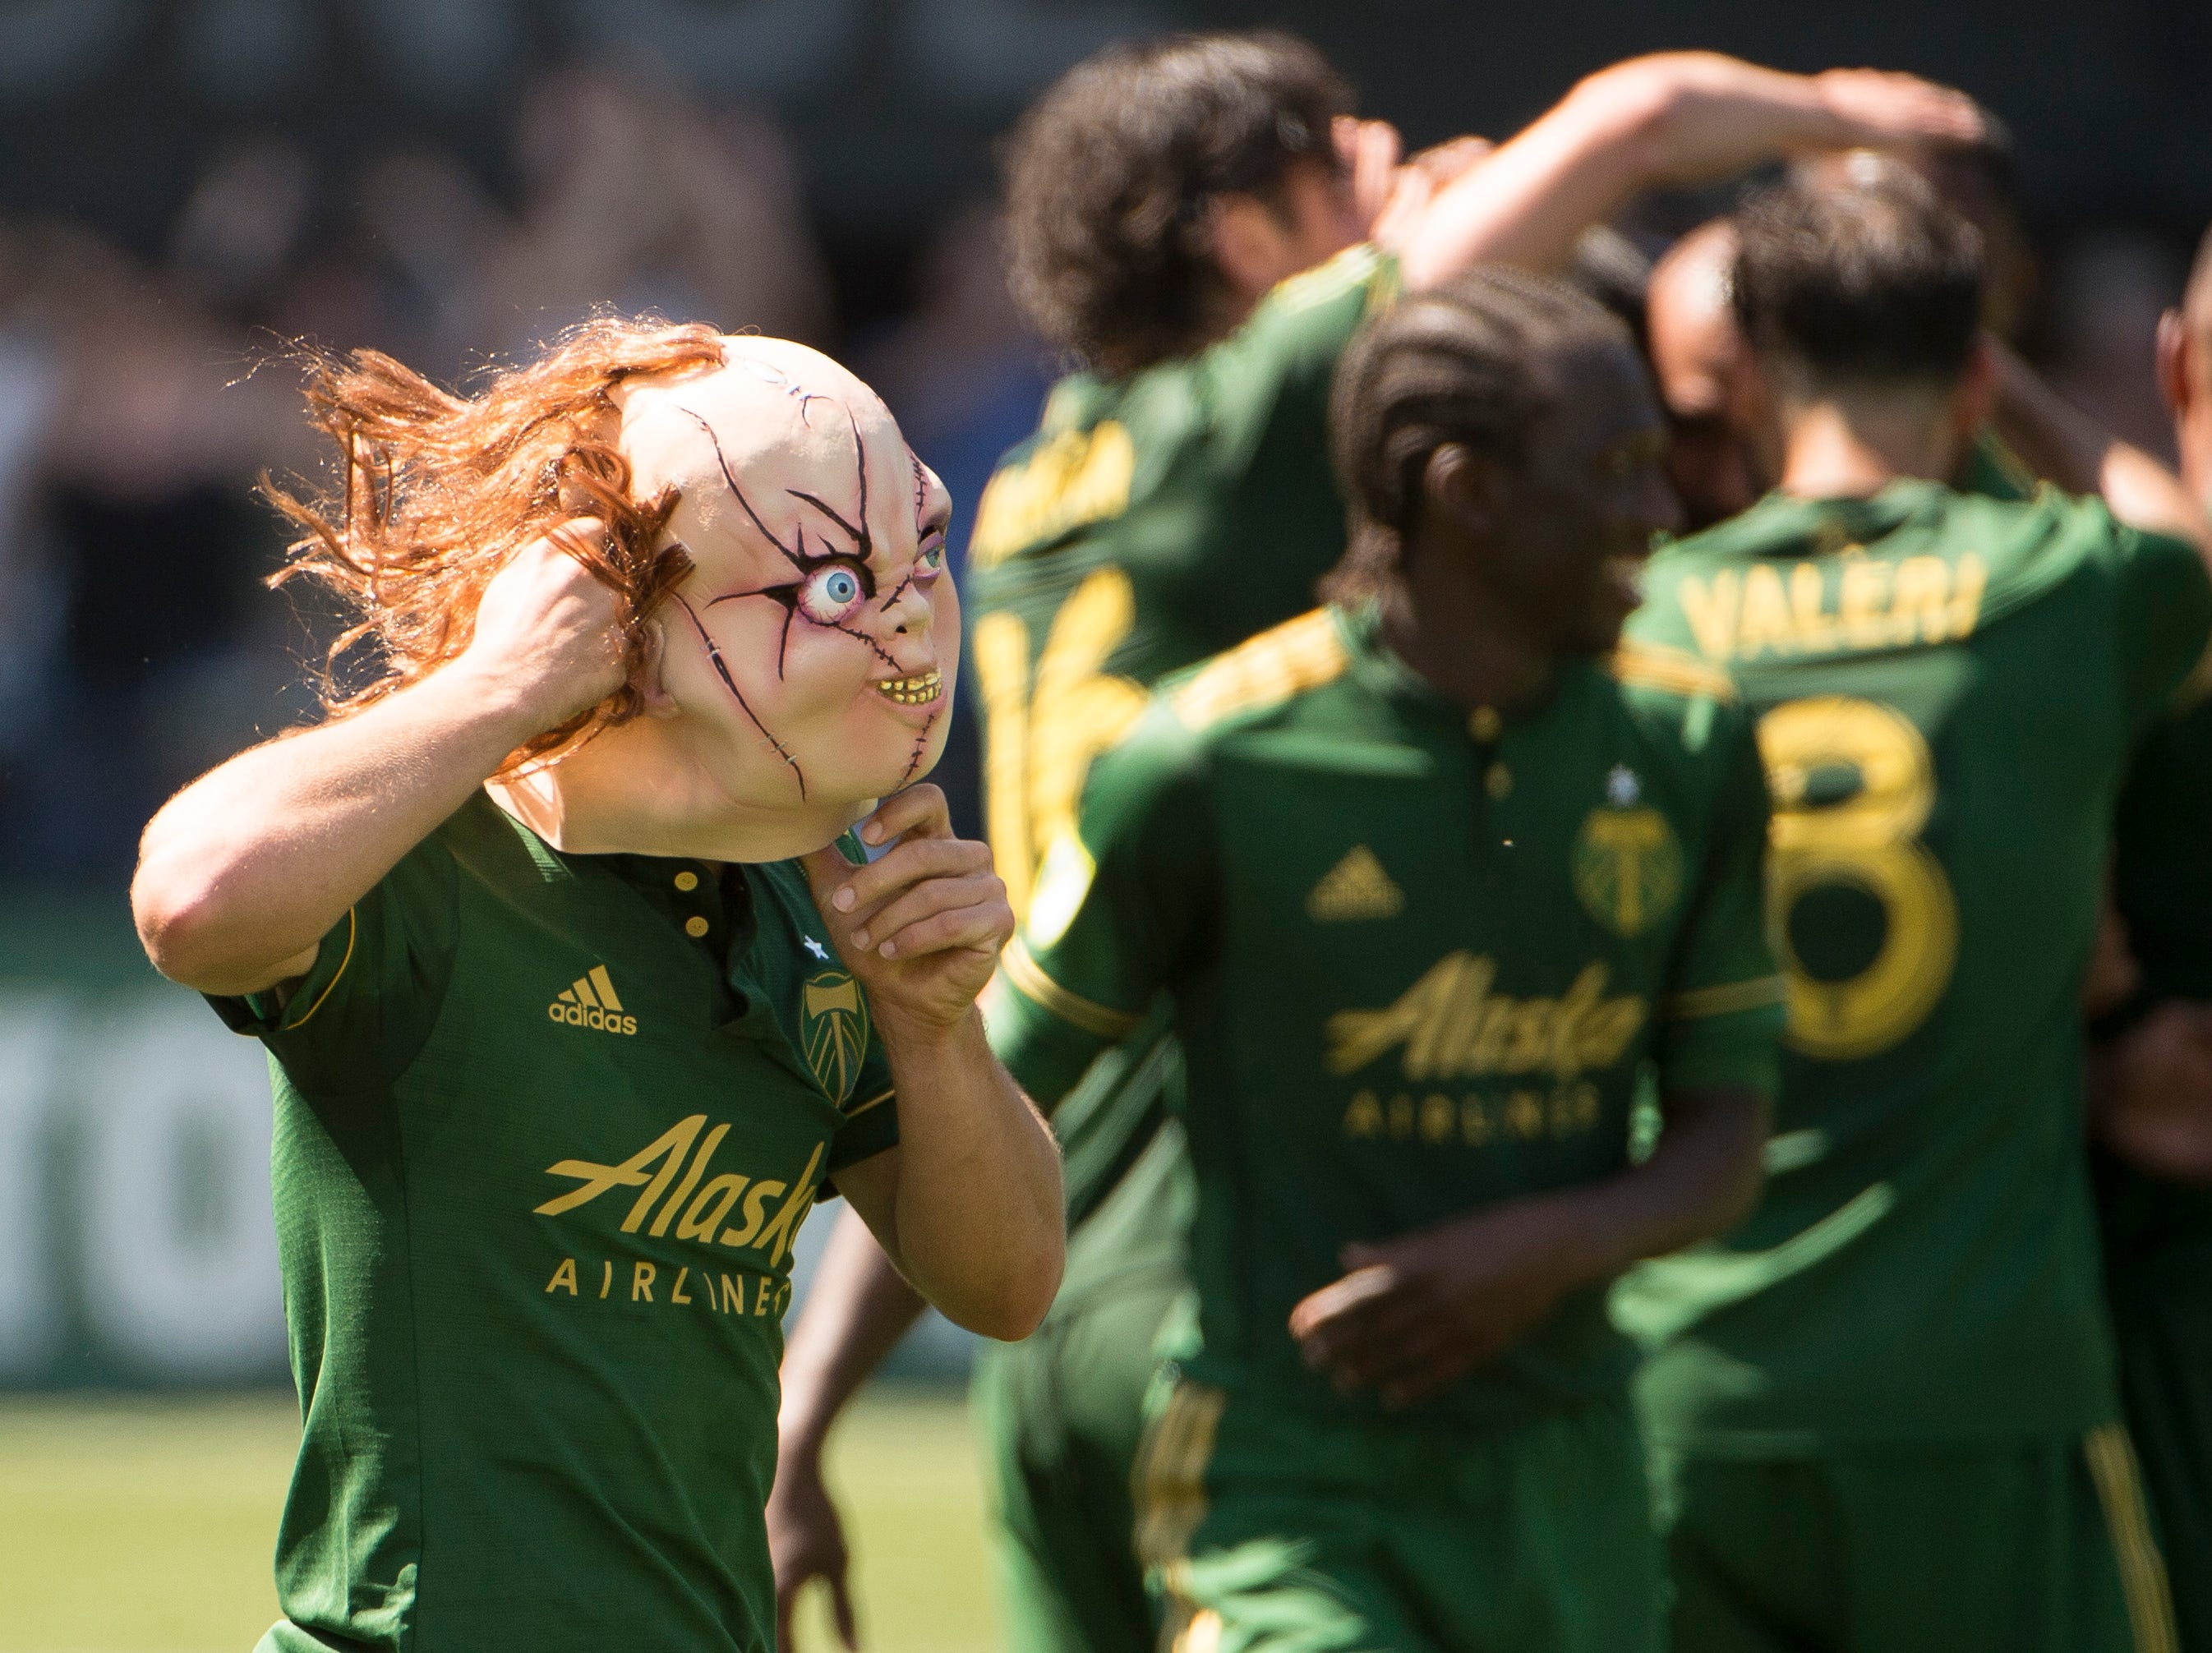 May 13: Portland Timbers midfielder Sebastian Blanco (10) puts on a Chucky mask after scoring a goal in the second half against the Seattle Sounders at Providence Park.